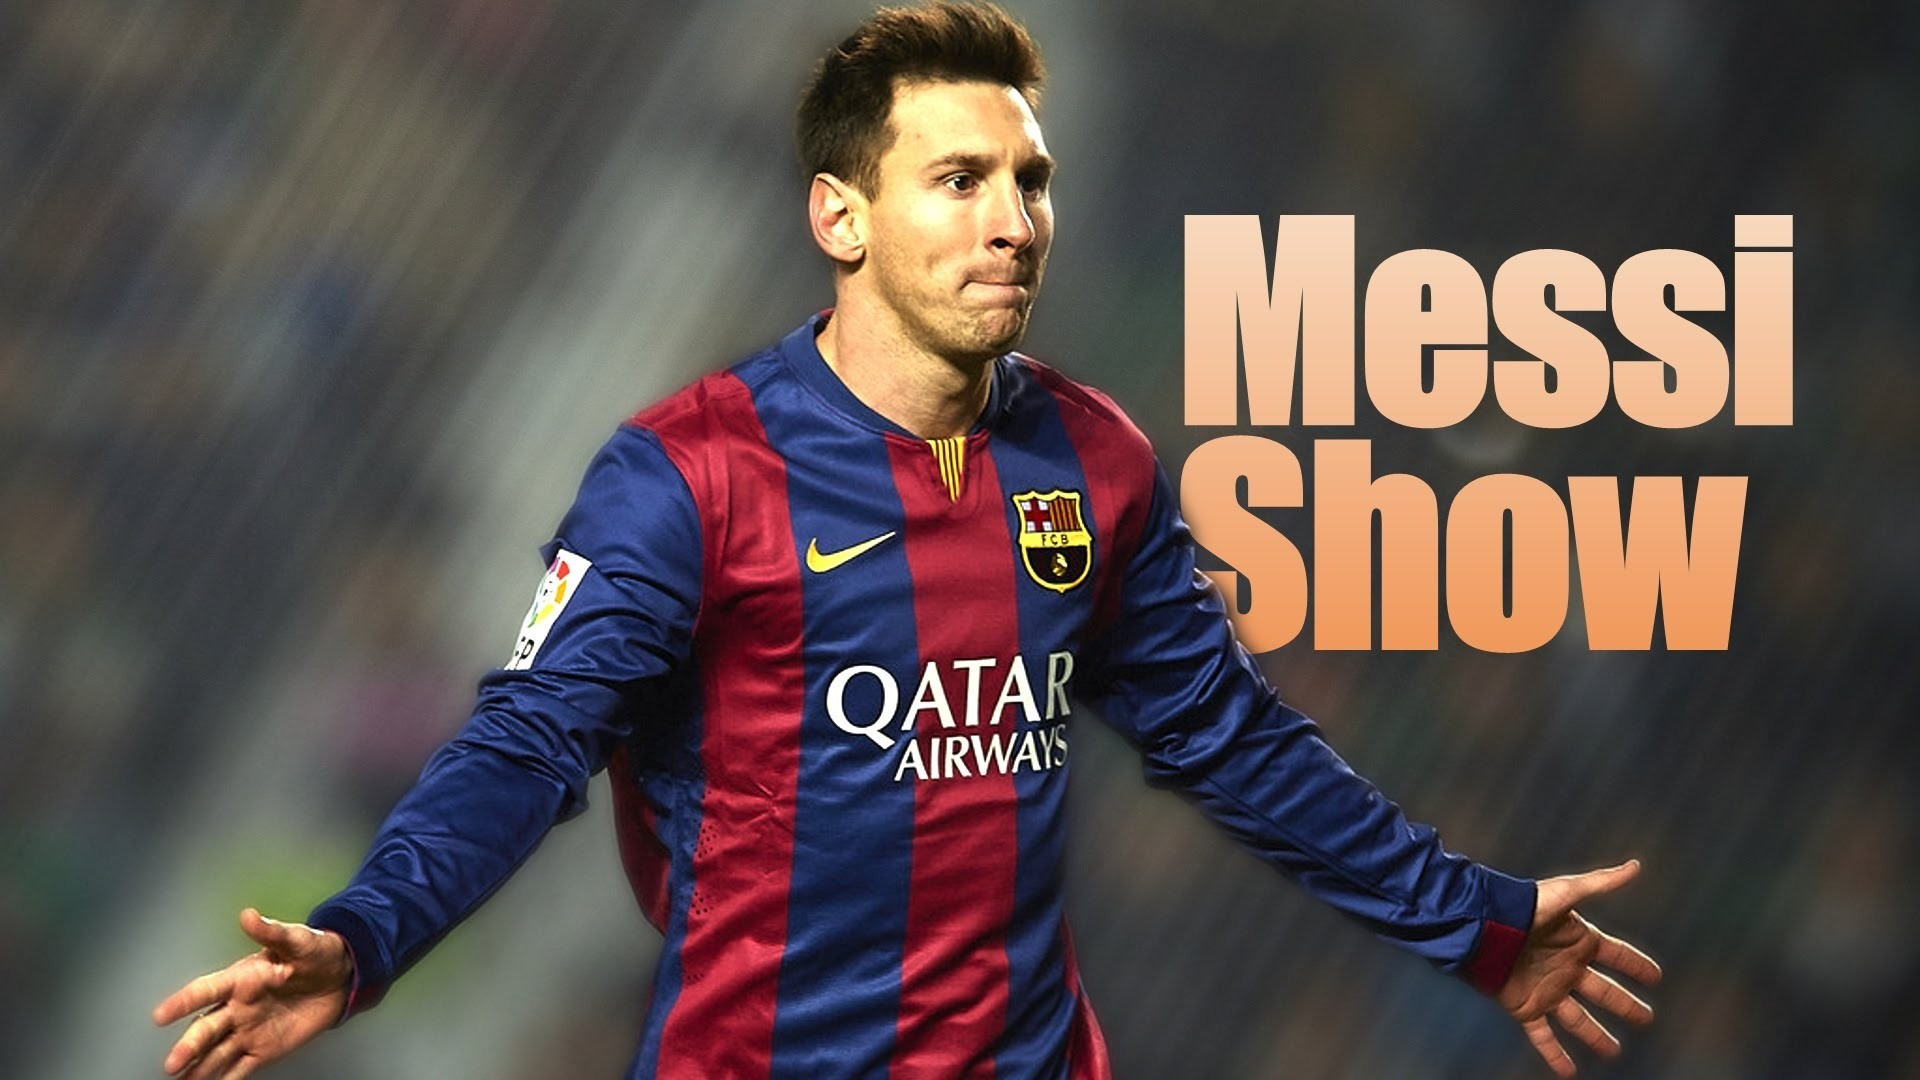 1920x1080 Lionel Messi 2016 Wallpaper HD Find Best Latest For Your PC